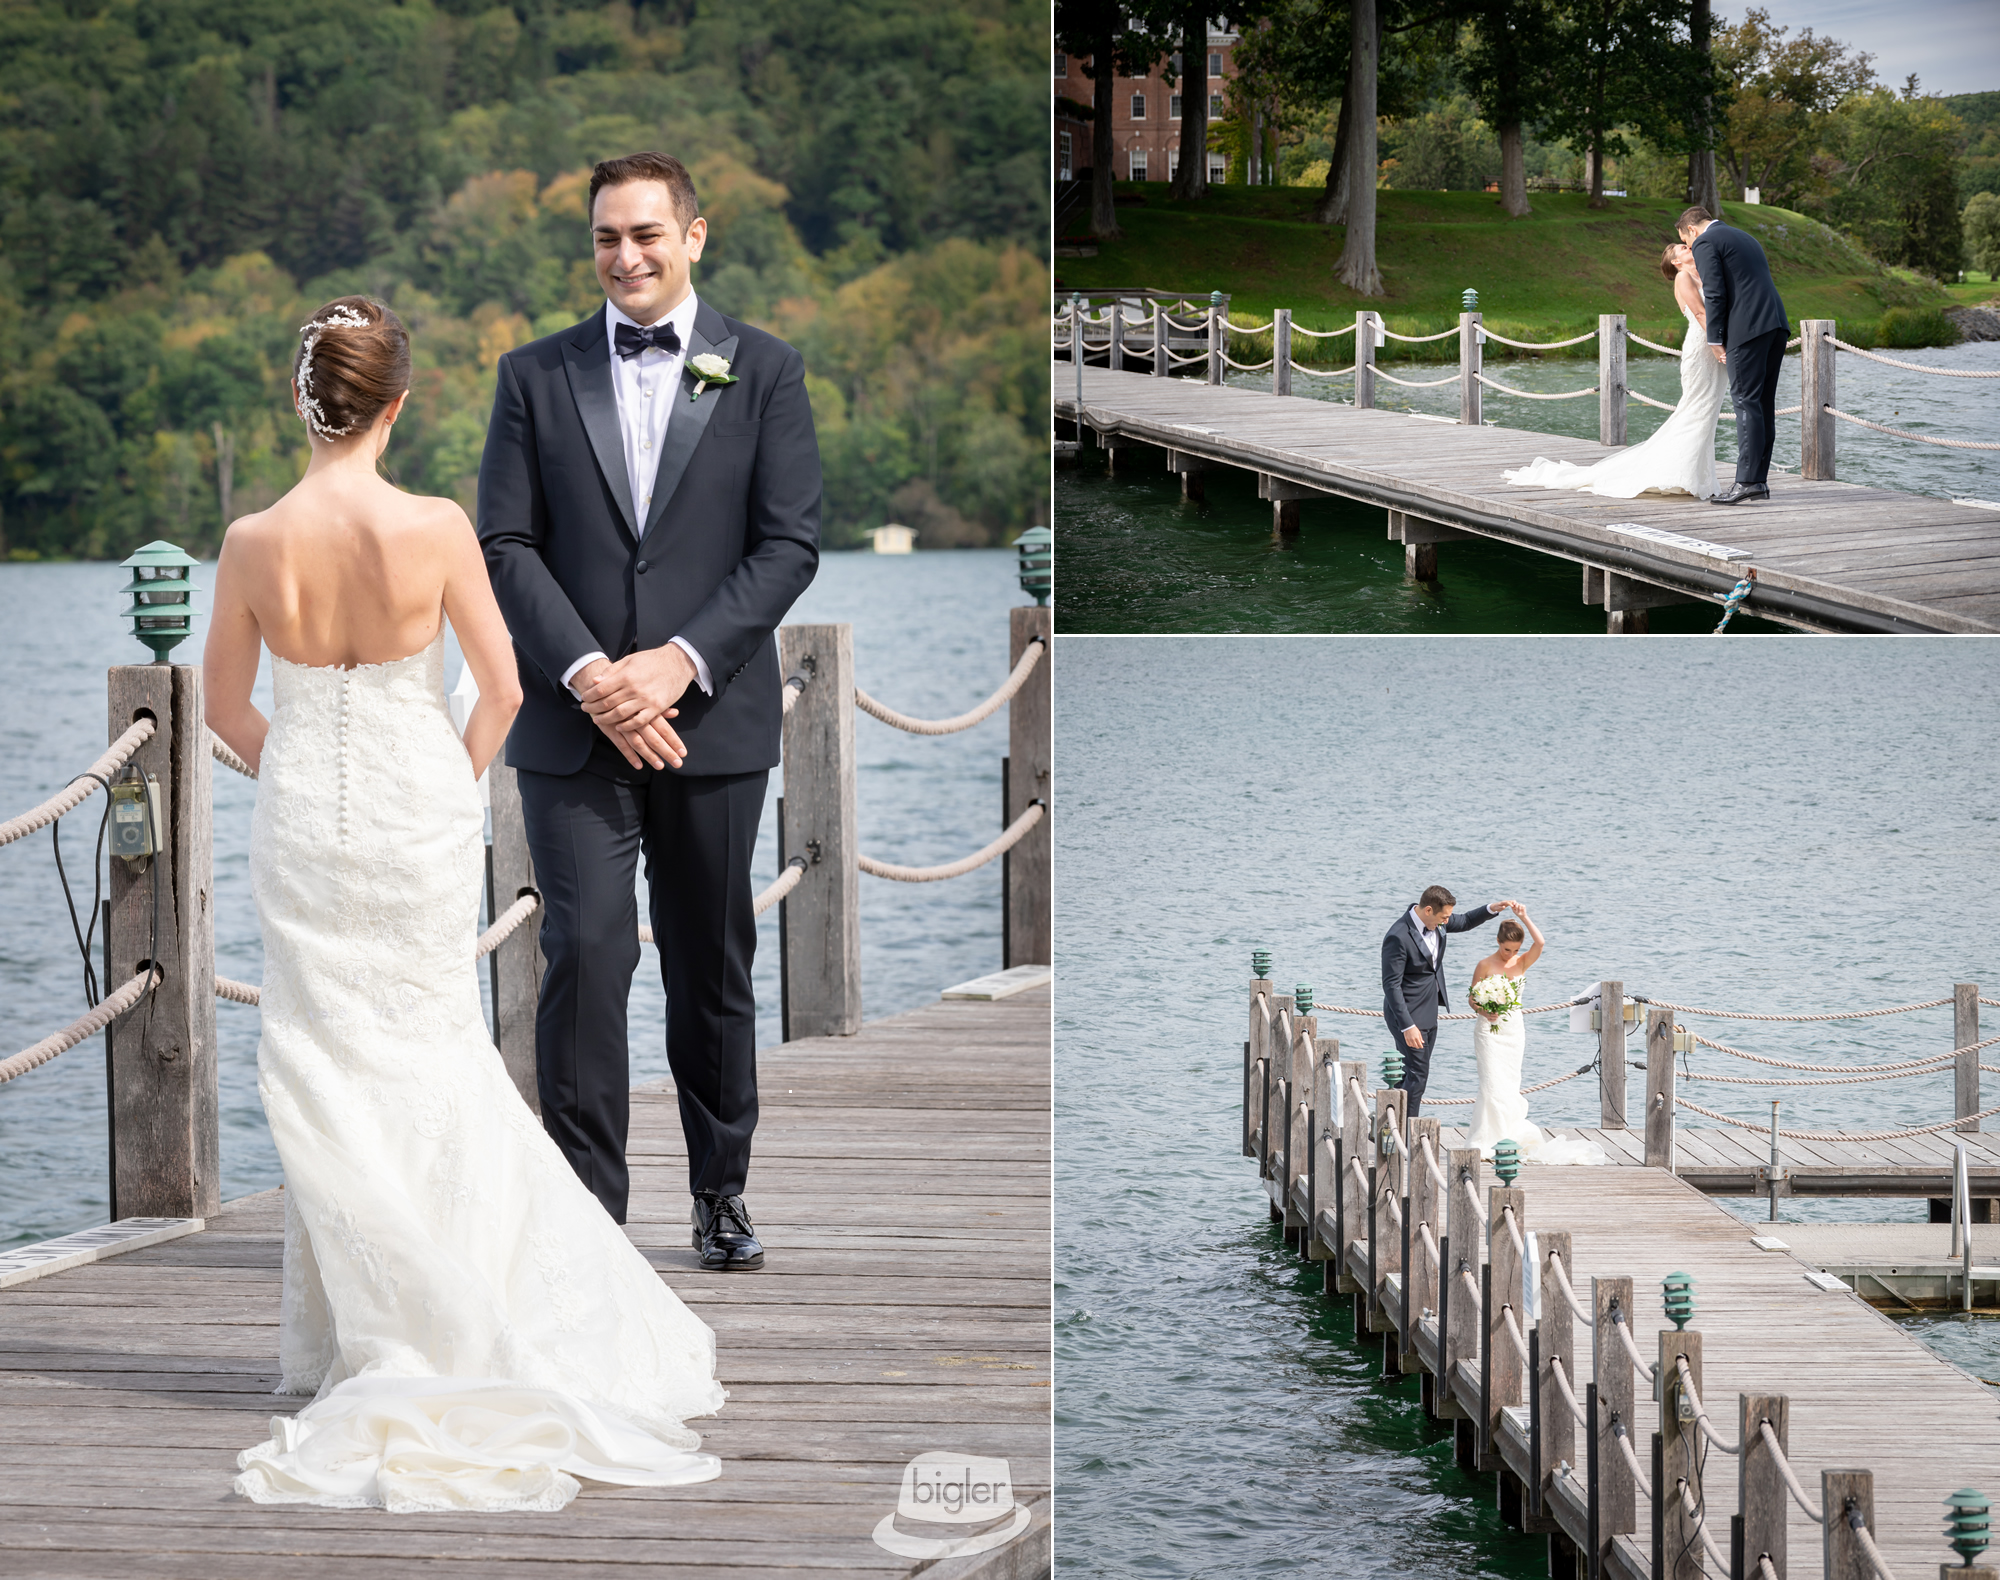 20180915_-_13_-_Ally_and_Andrew_Otesaga_Wedding